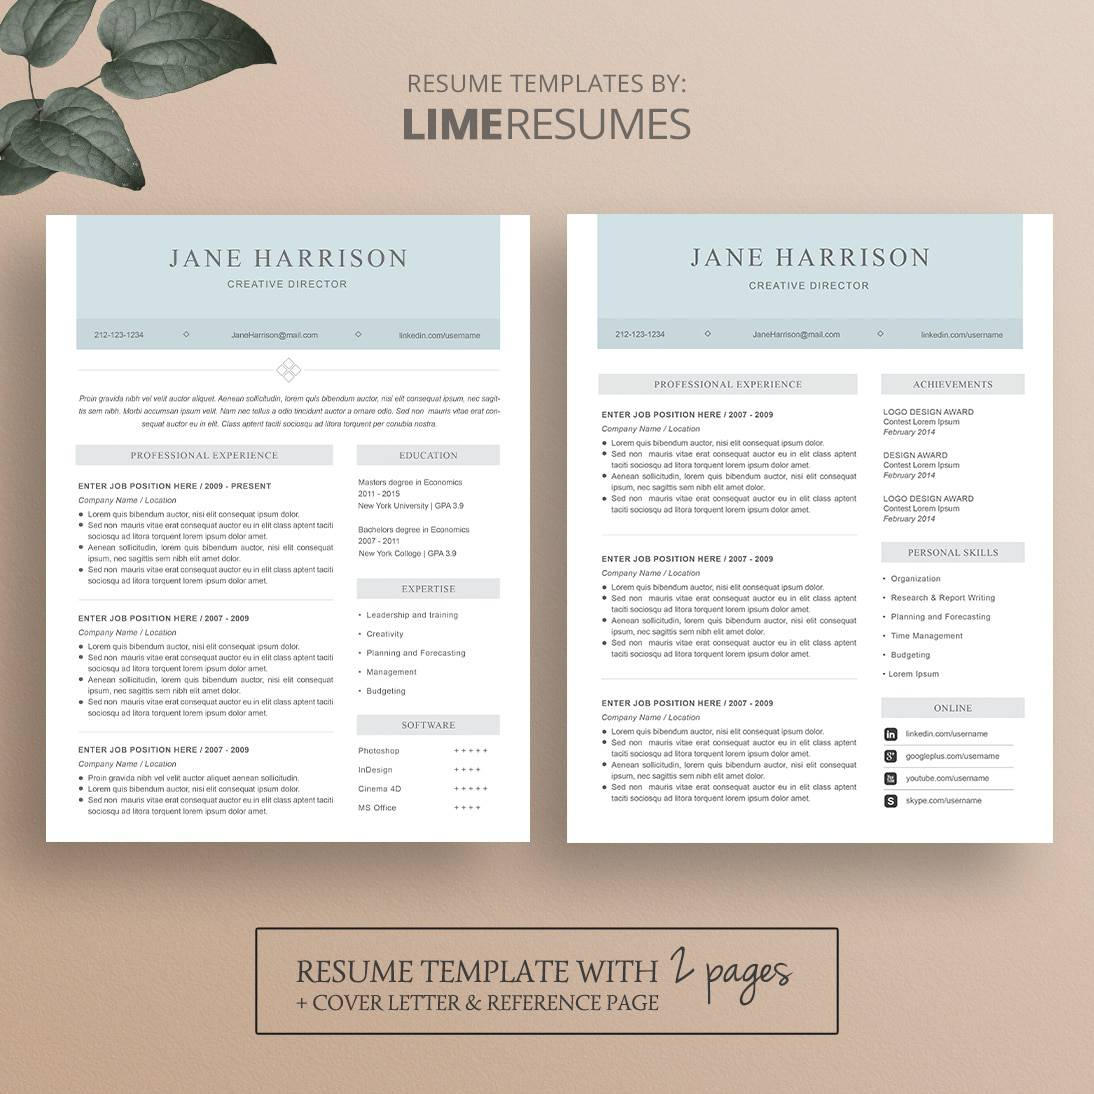 Is There A Resume Template In Microsoft Word 2007 Resume Template 31 Limeresumes